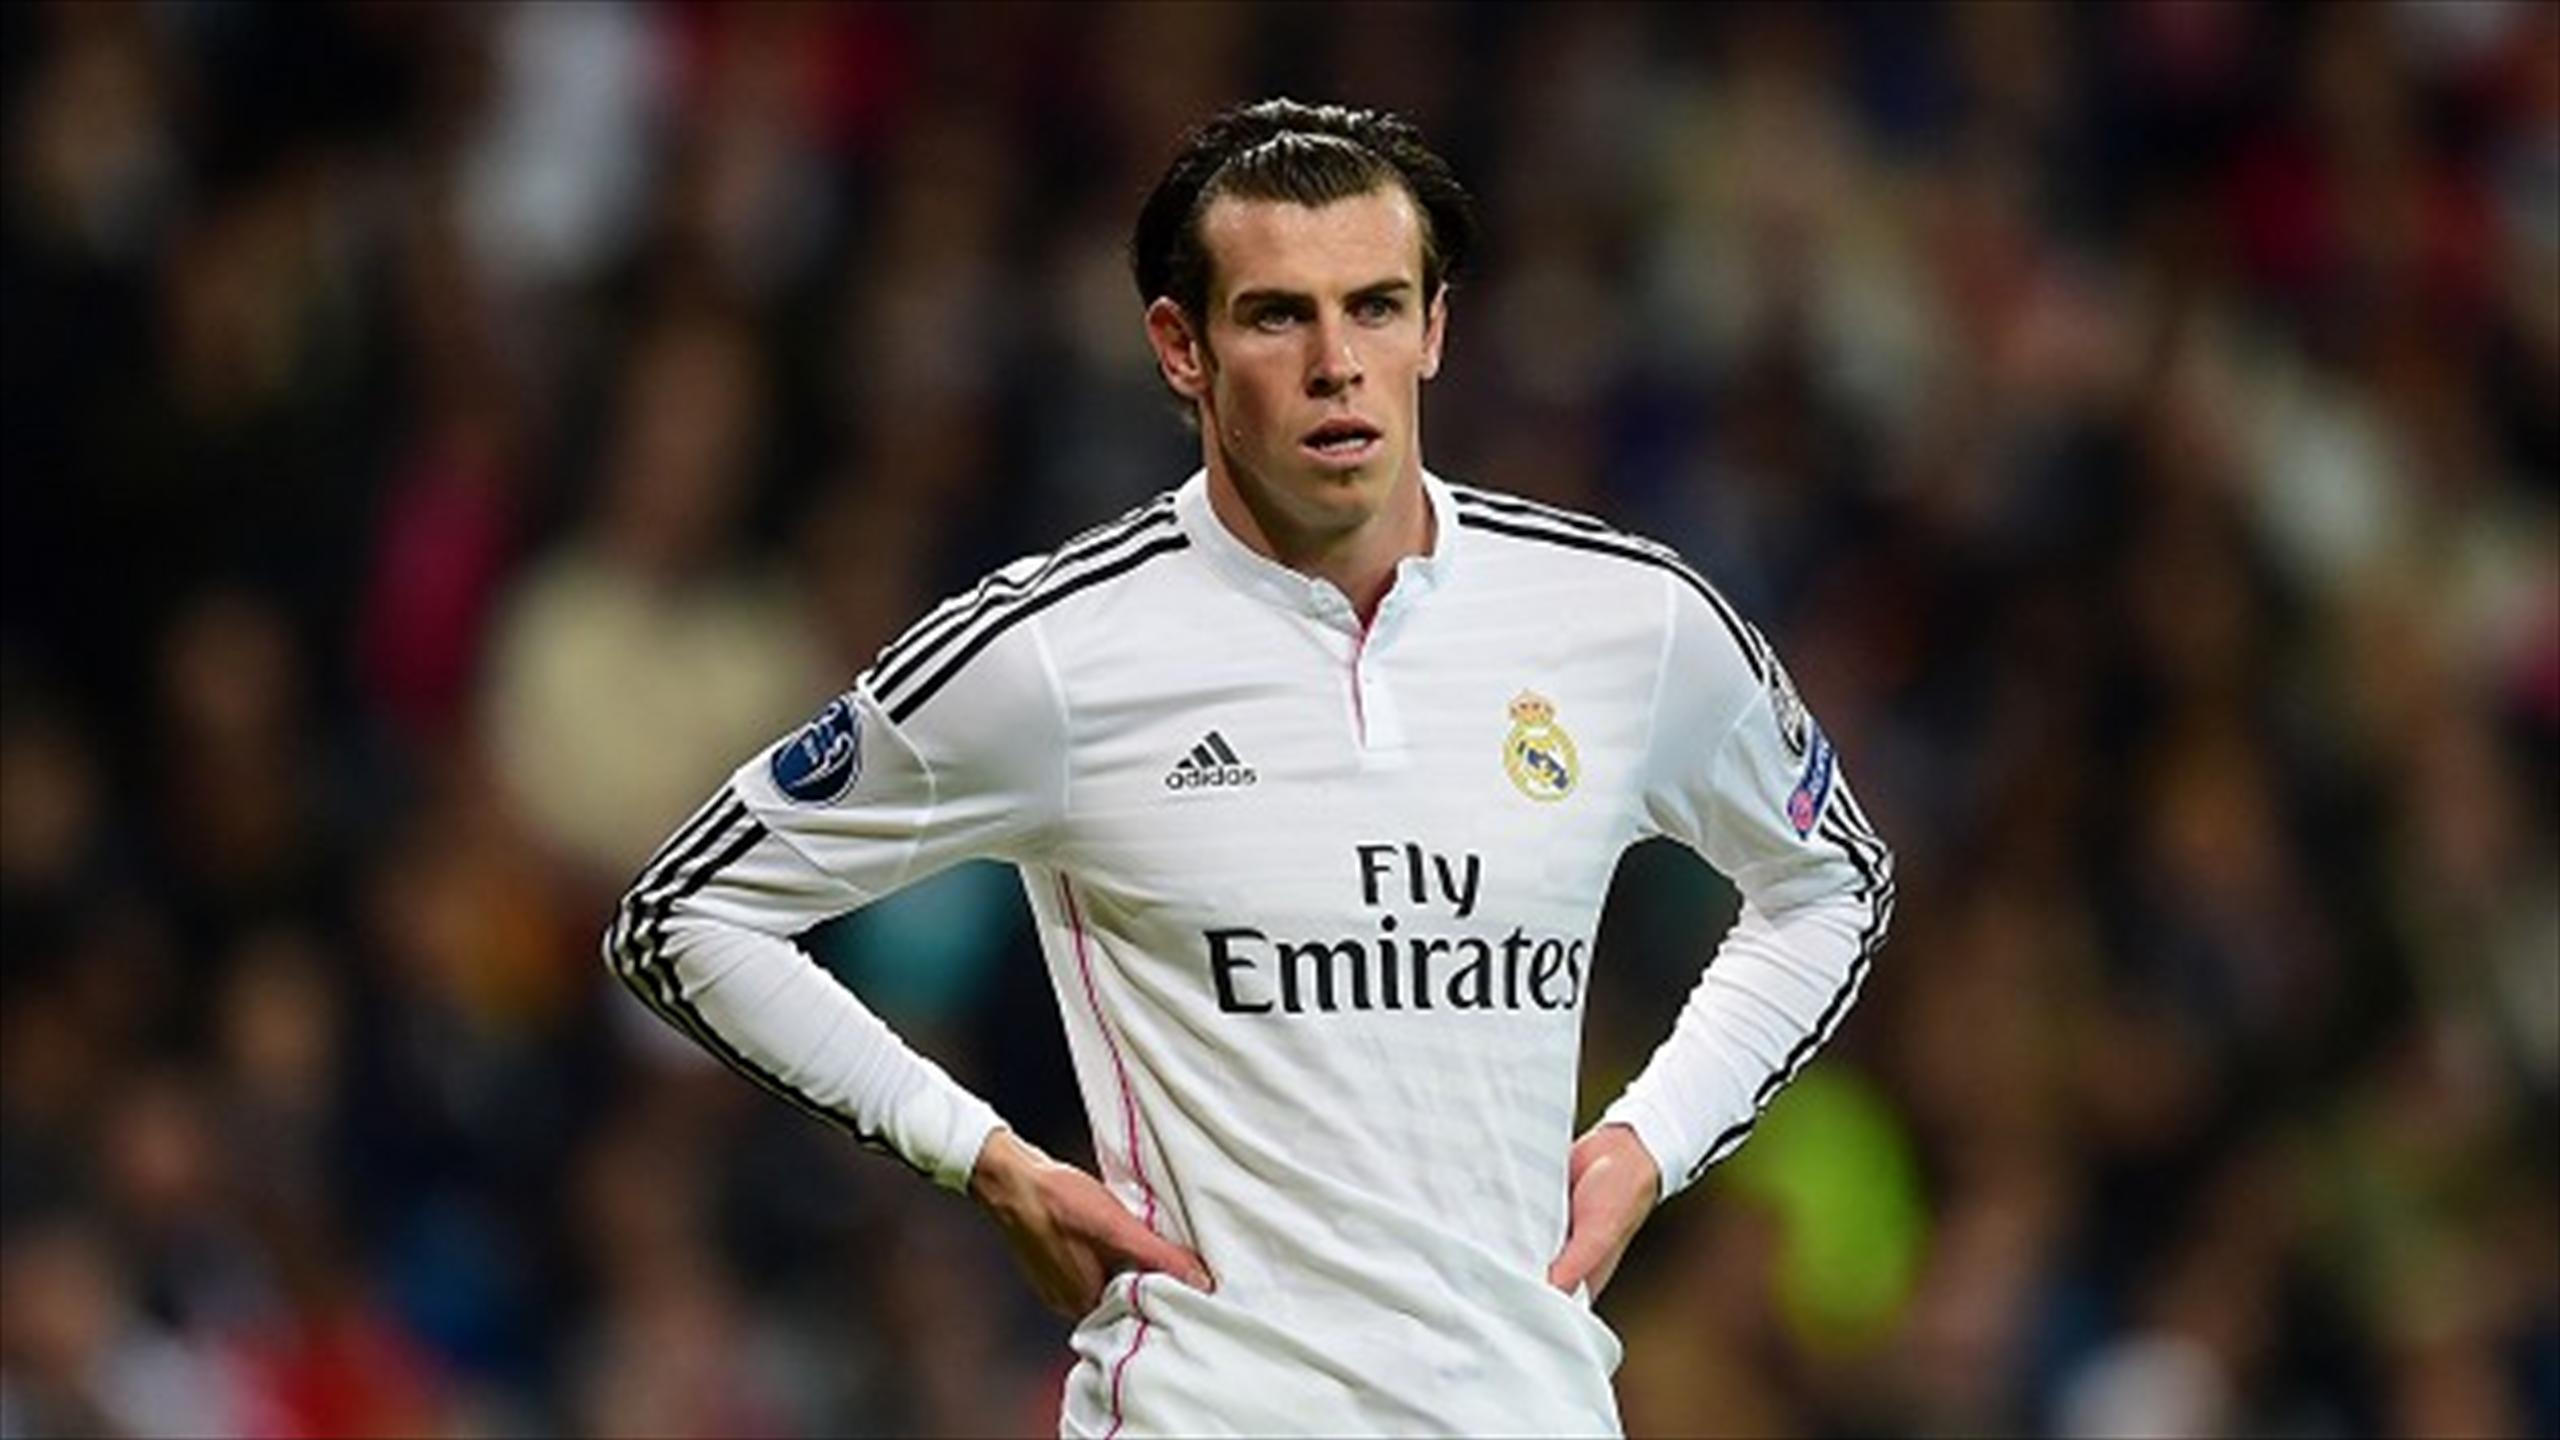 Man Utd would be crazy to use David de Gea to land Gareth Bale Memphis Depay is a better prospect anyway